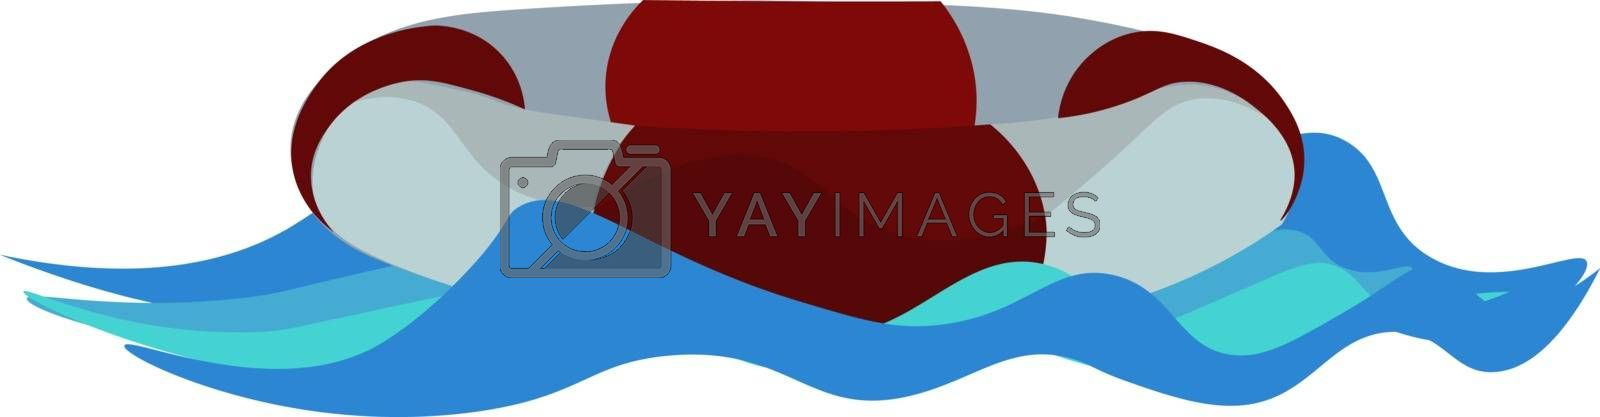 Royalty free image of Painting of a lifebelt that stays afloat in the sea vector or co by Morphart